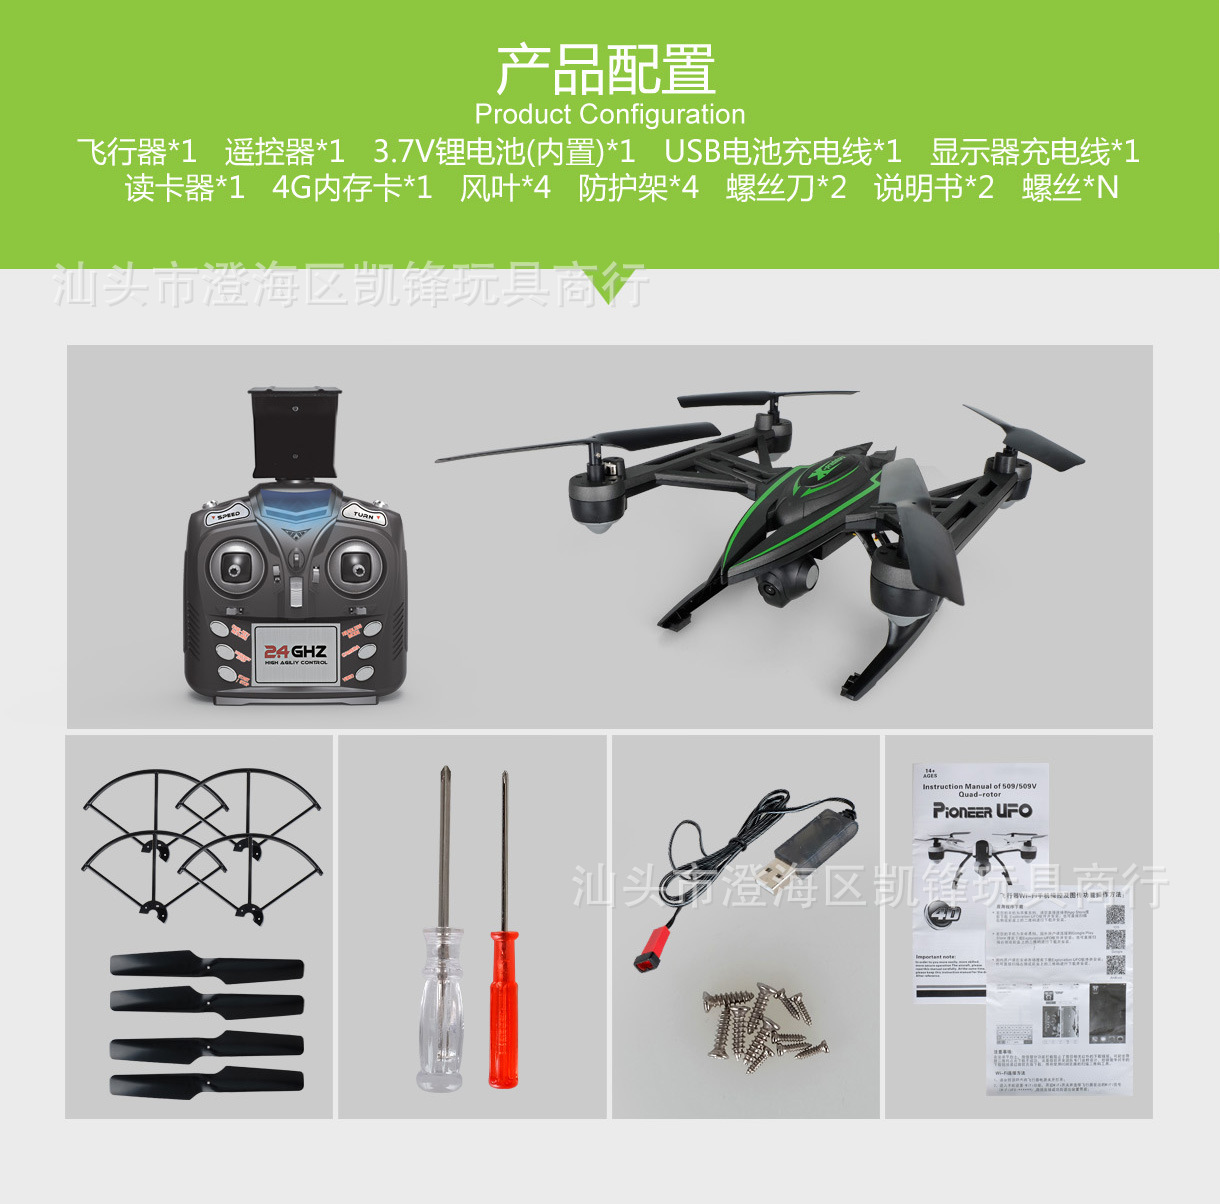 Jxd Da 510W Pressure Set High Remote Control Aircraft WiFi Real-Time Transmission Quadcopter Airplane Model Toy